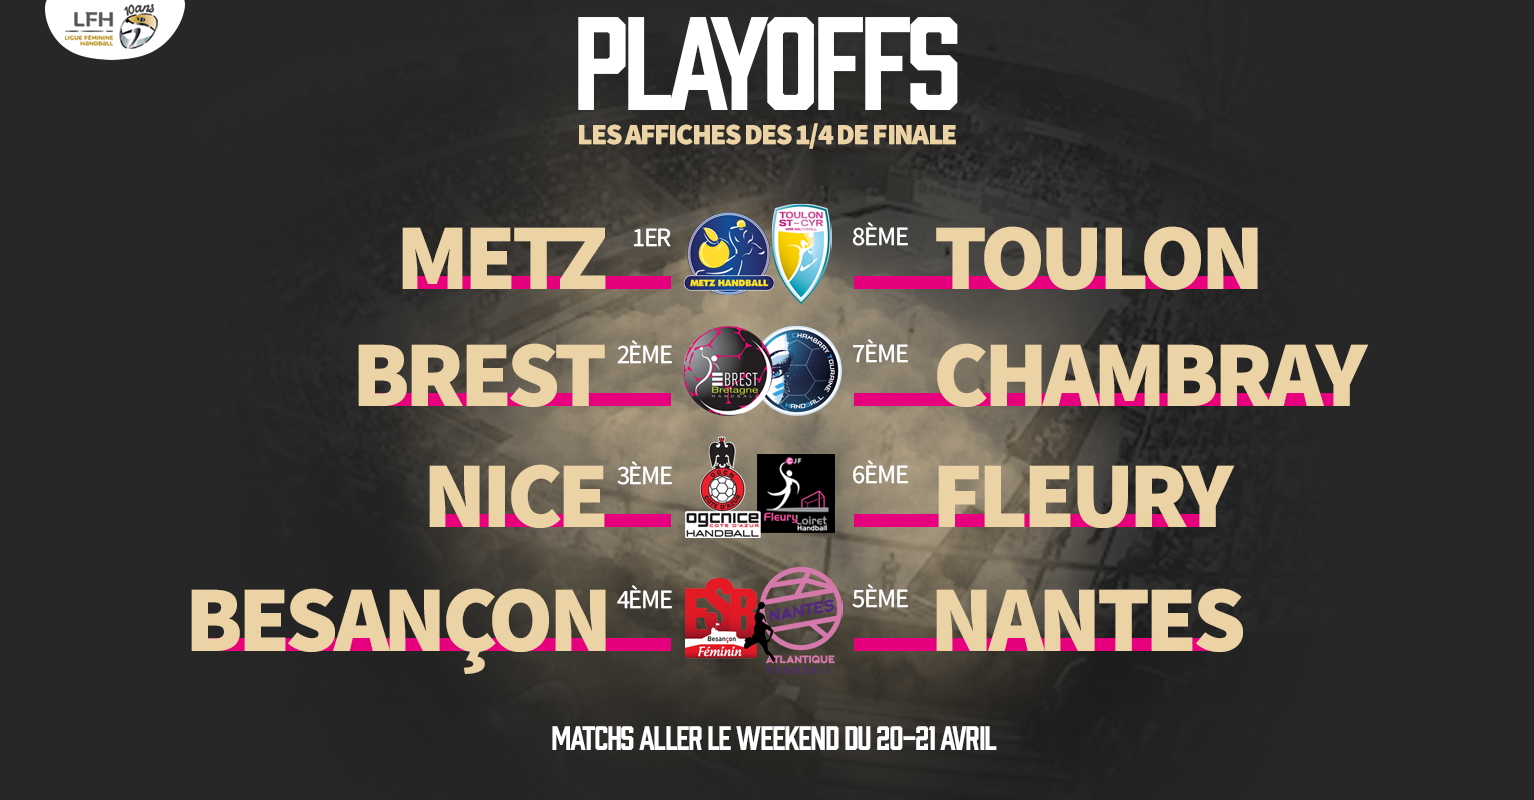 LFH-PROGRAMME-PLAYOFFS